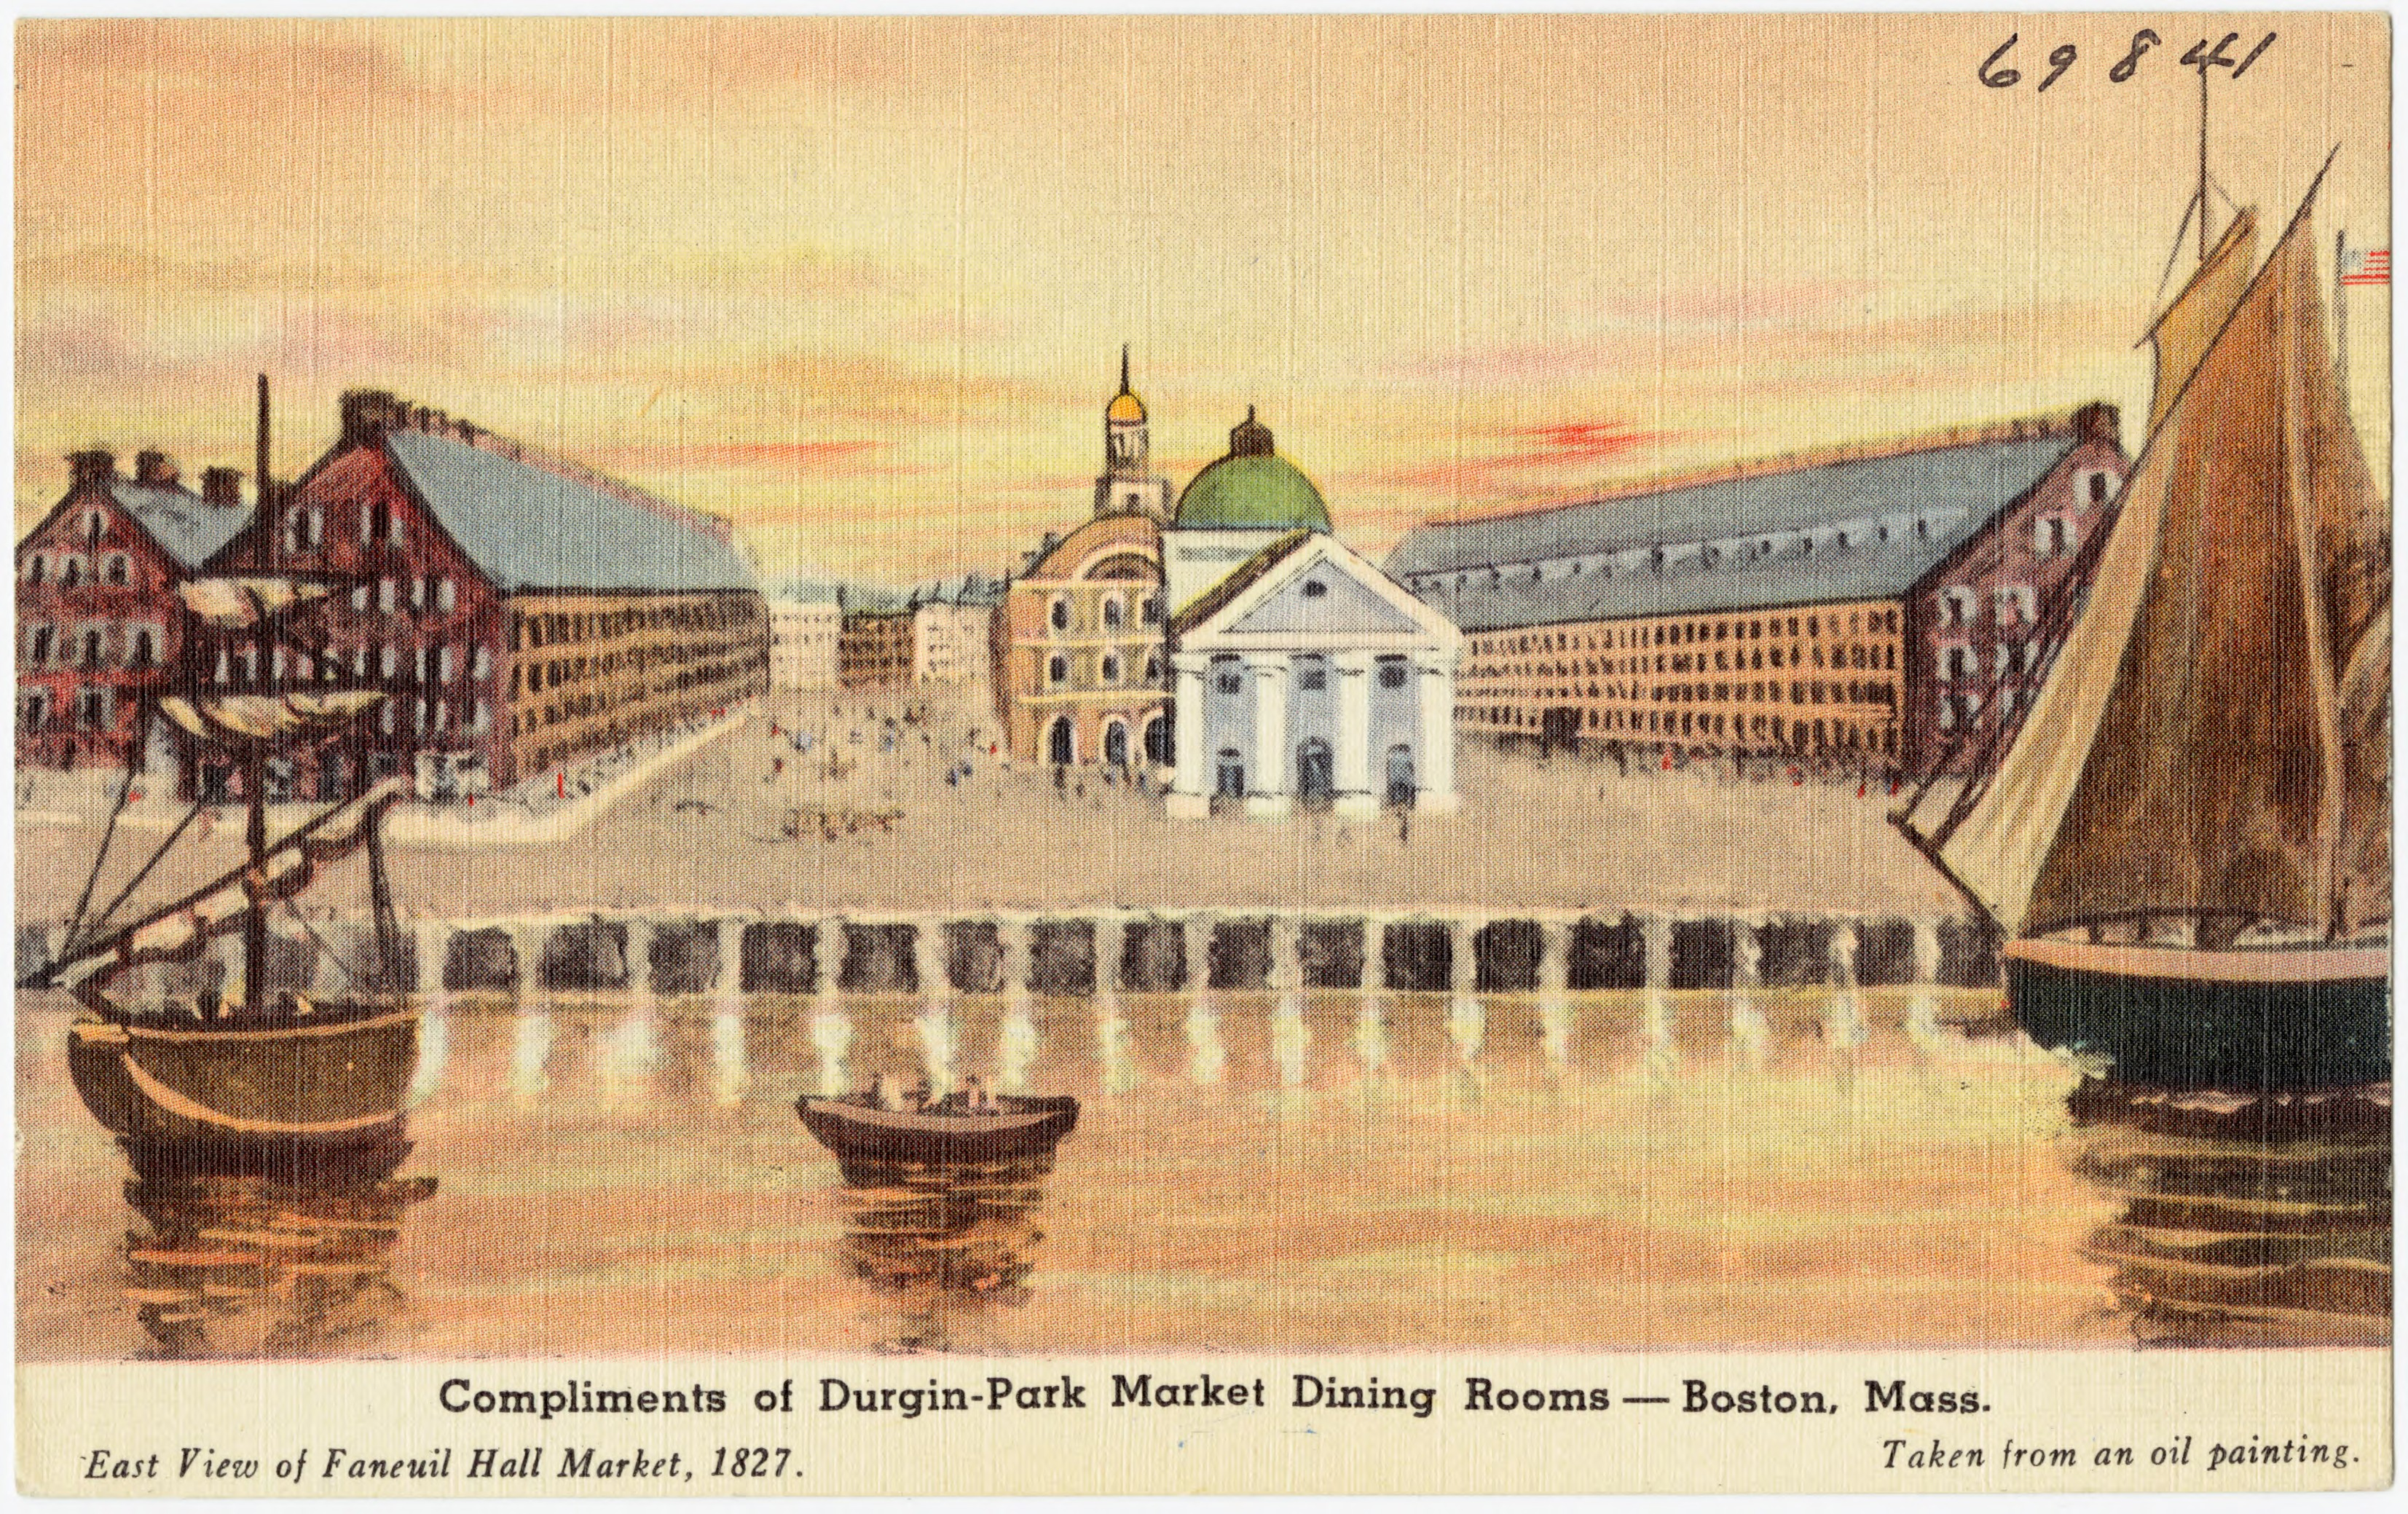 File:Compliments Of Durgin Park Market Dining Rooms    Boston, Mass. Part 14